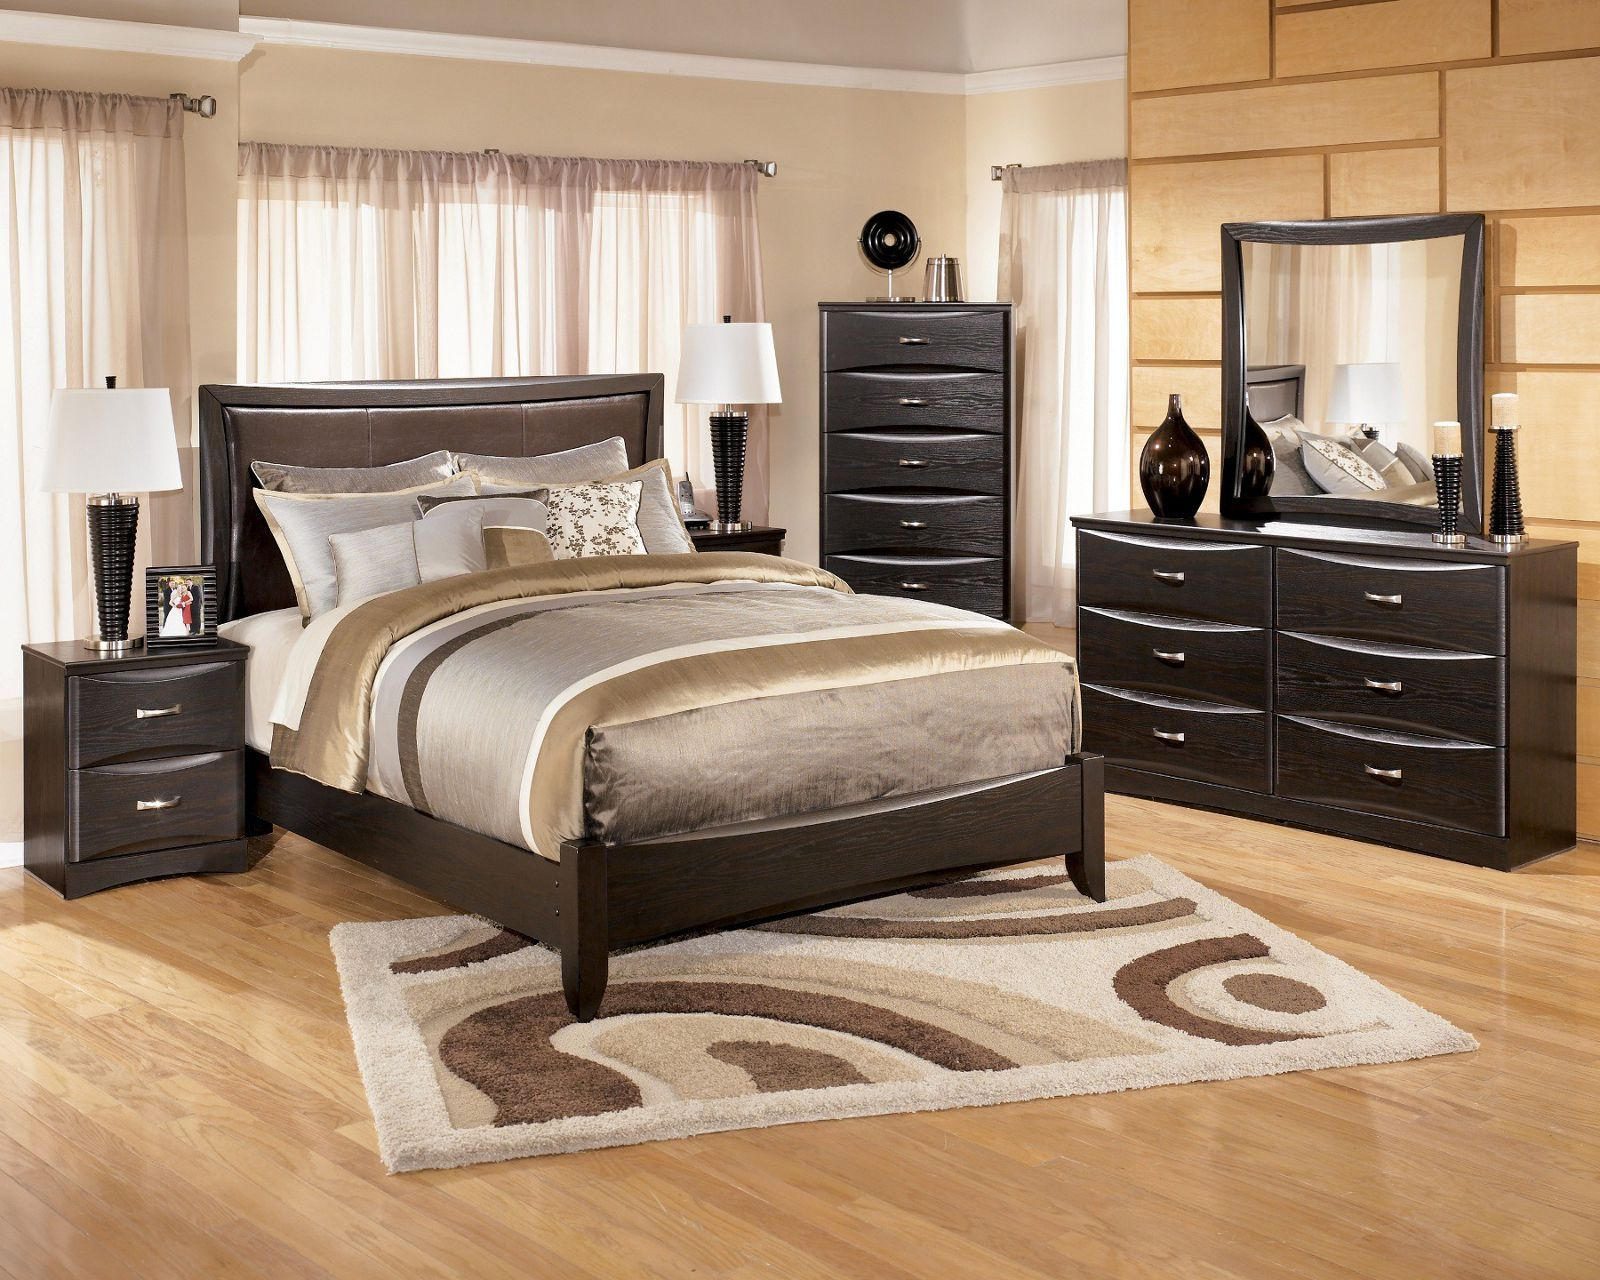 Ashley furniture Ashley furniture maribel panel bedroom set queen ...